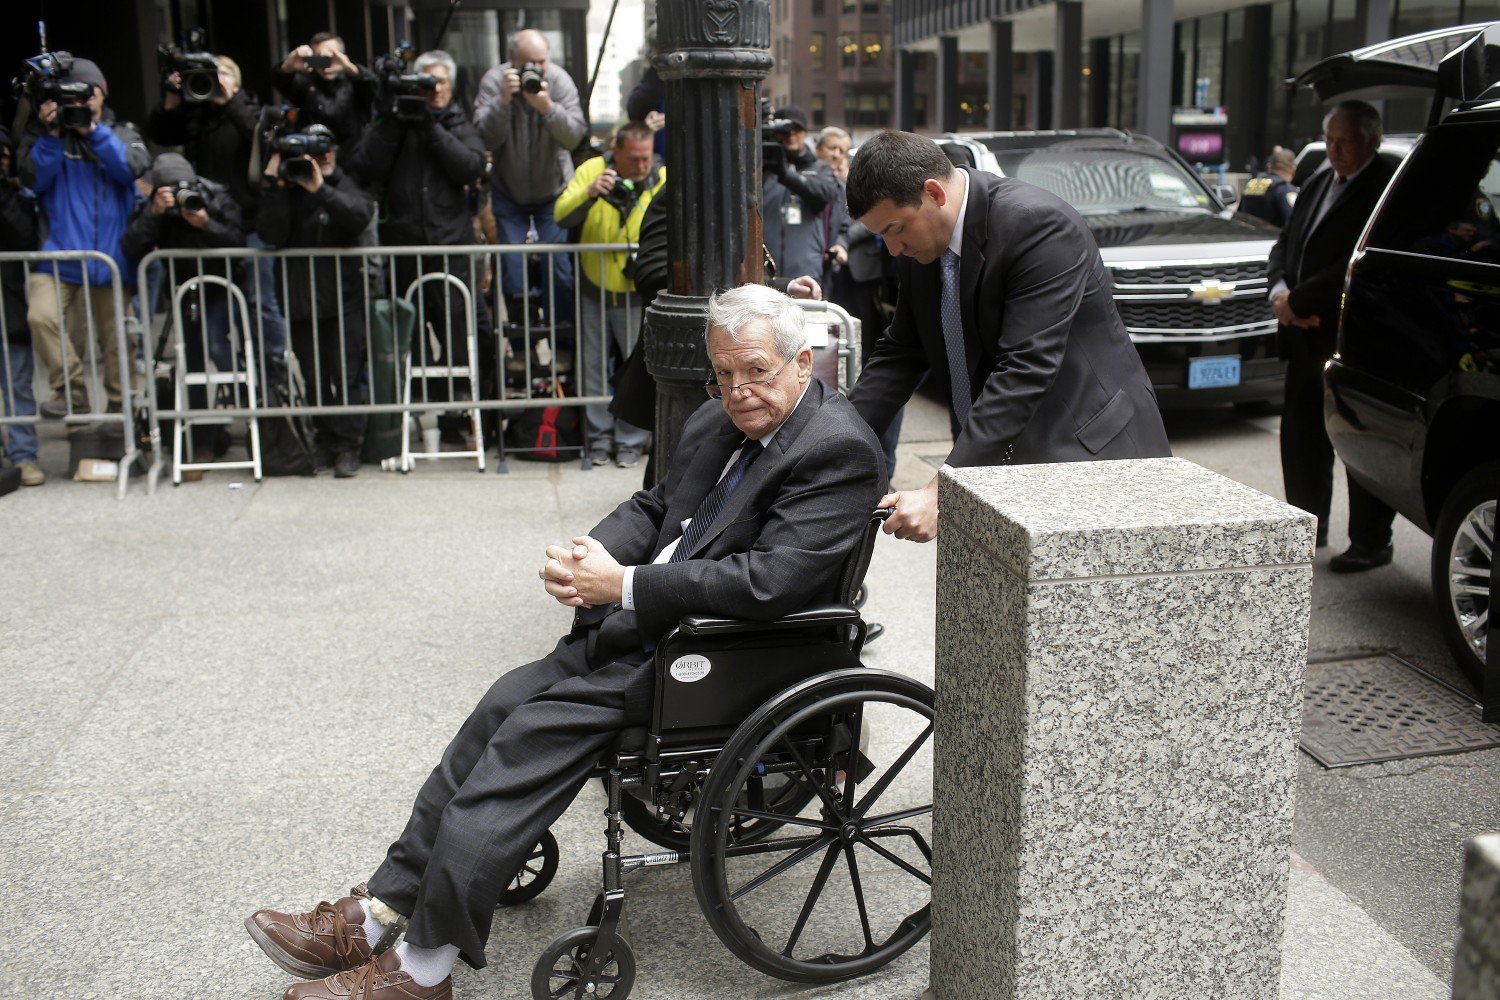 Judge bars ex-Speaker Dennis Hastert from being alone with minors